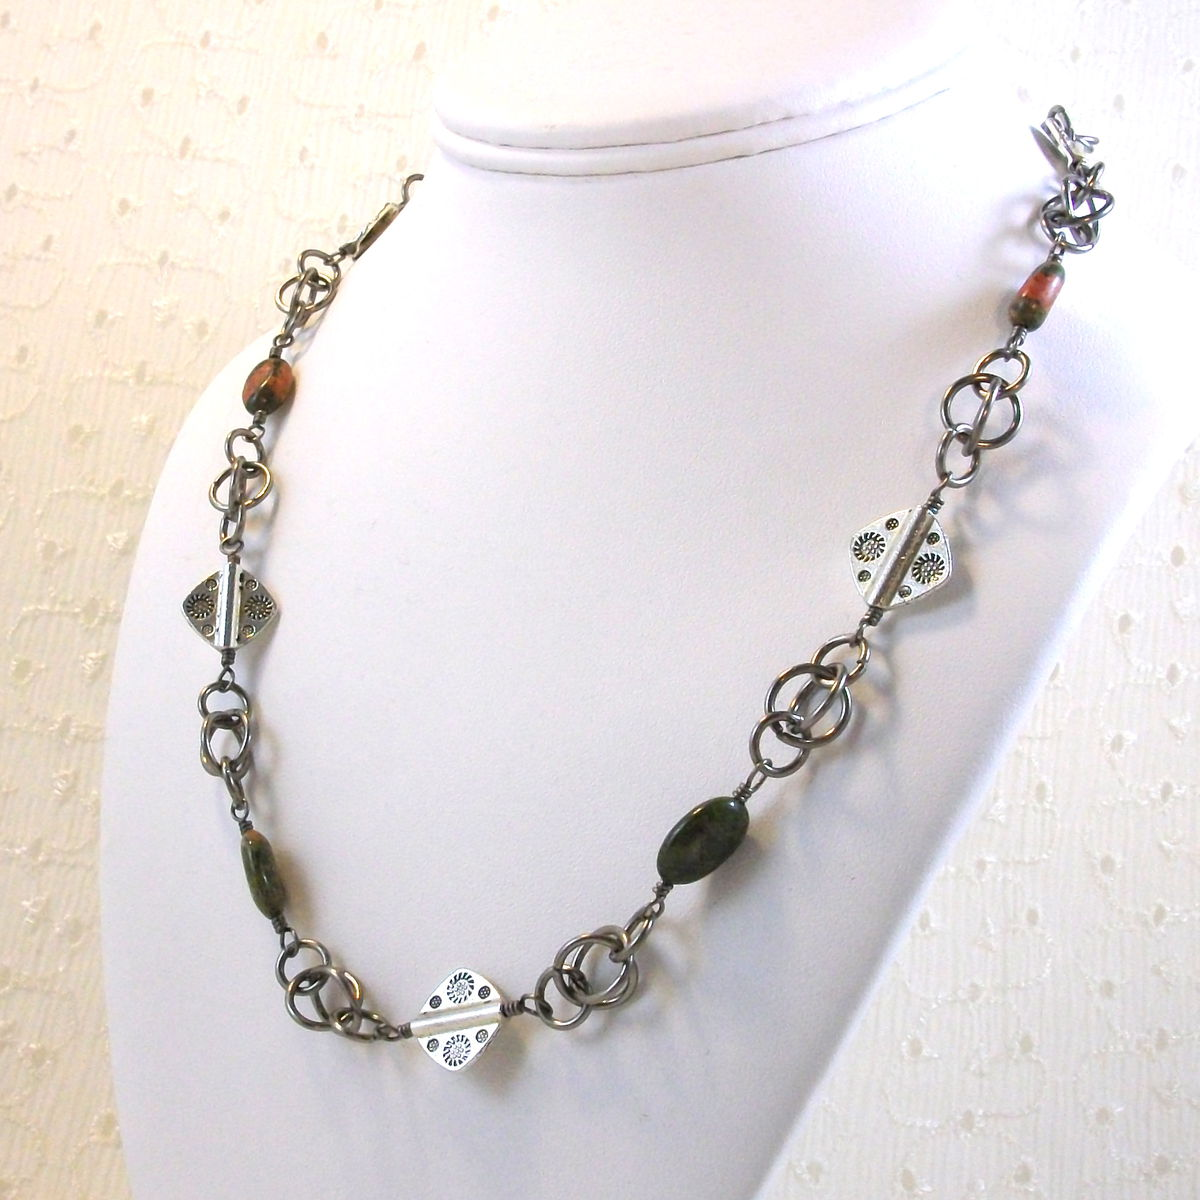 Unakite Necklace with Handmade Chain and Pewter Bead Accents - product image